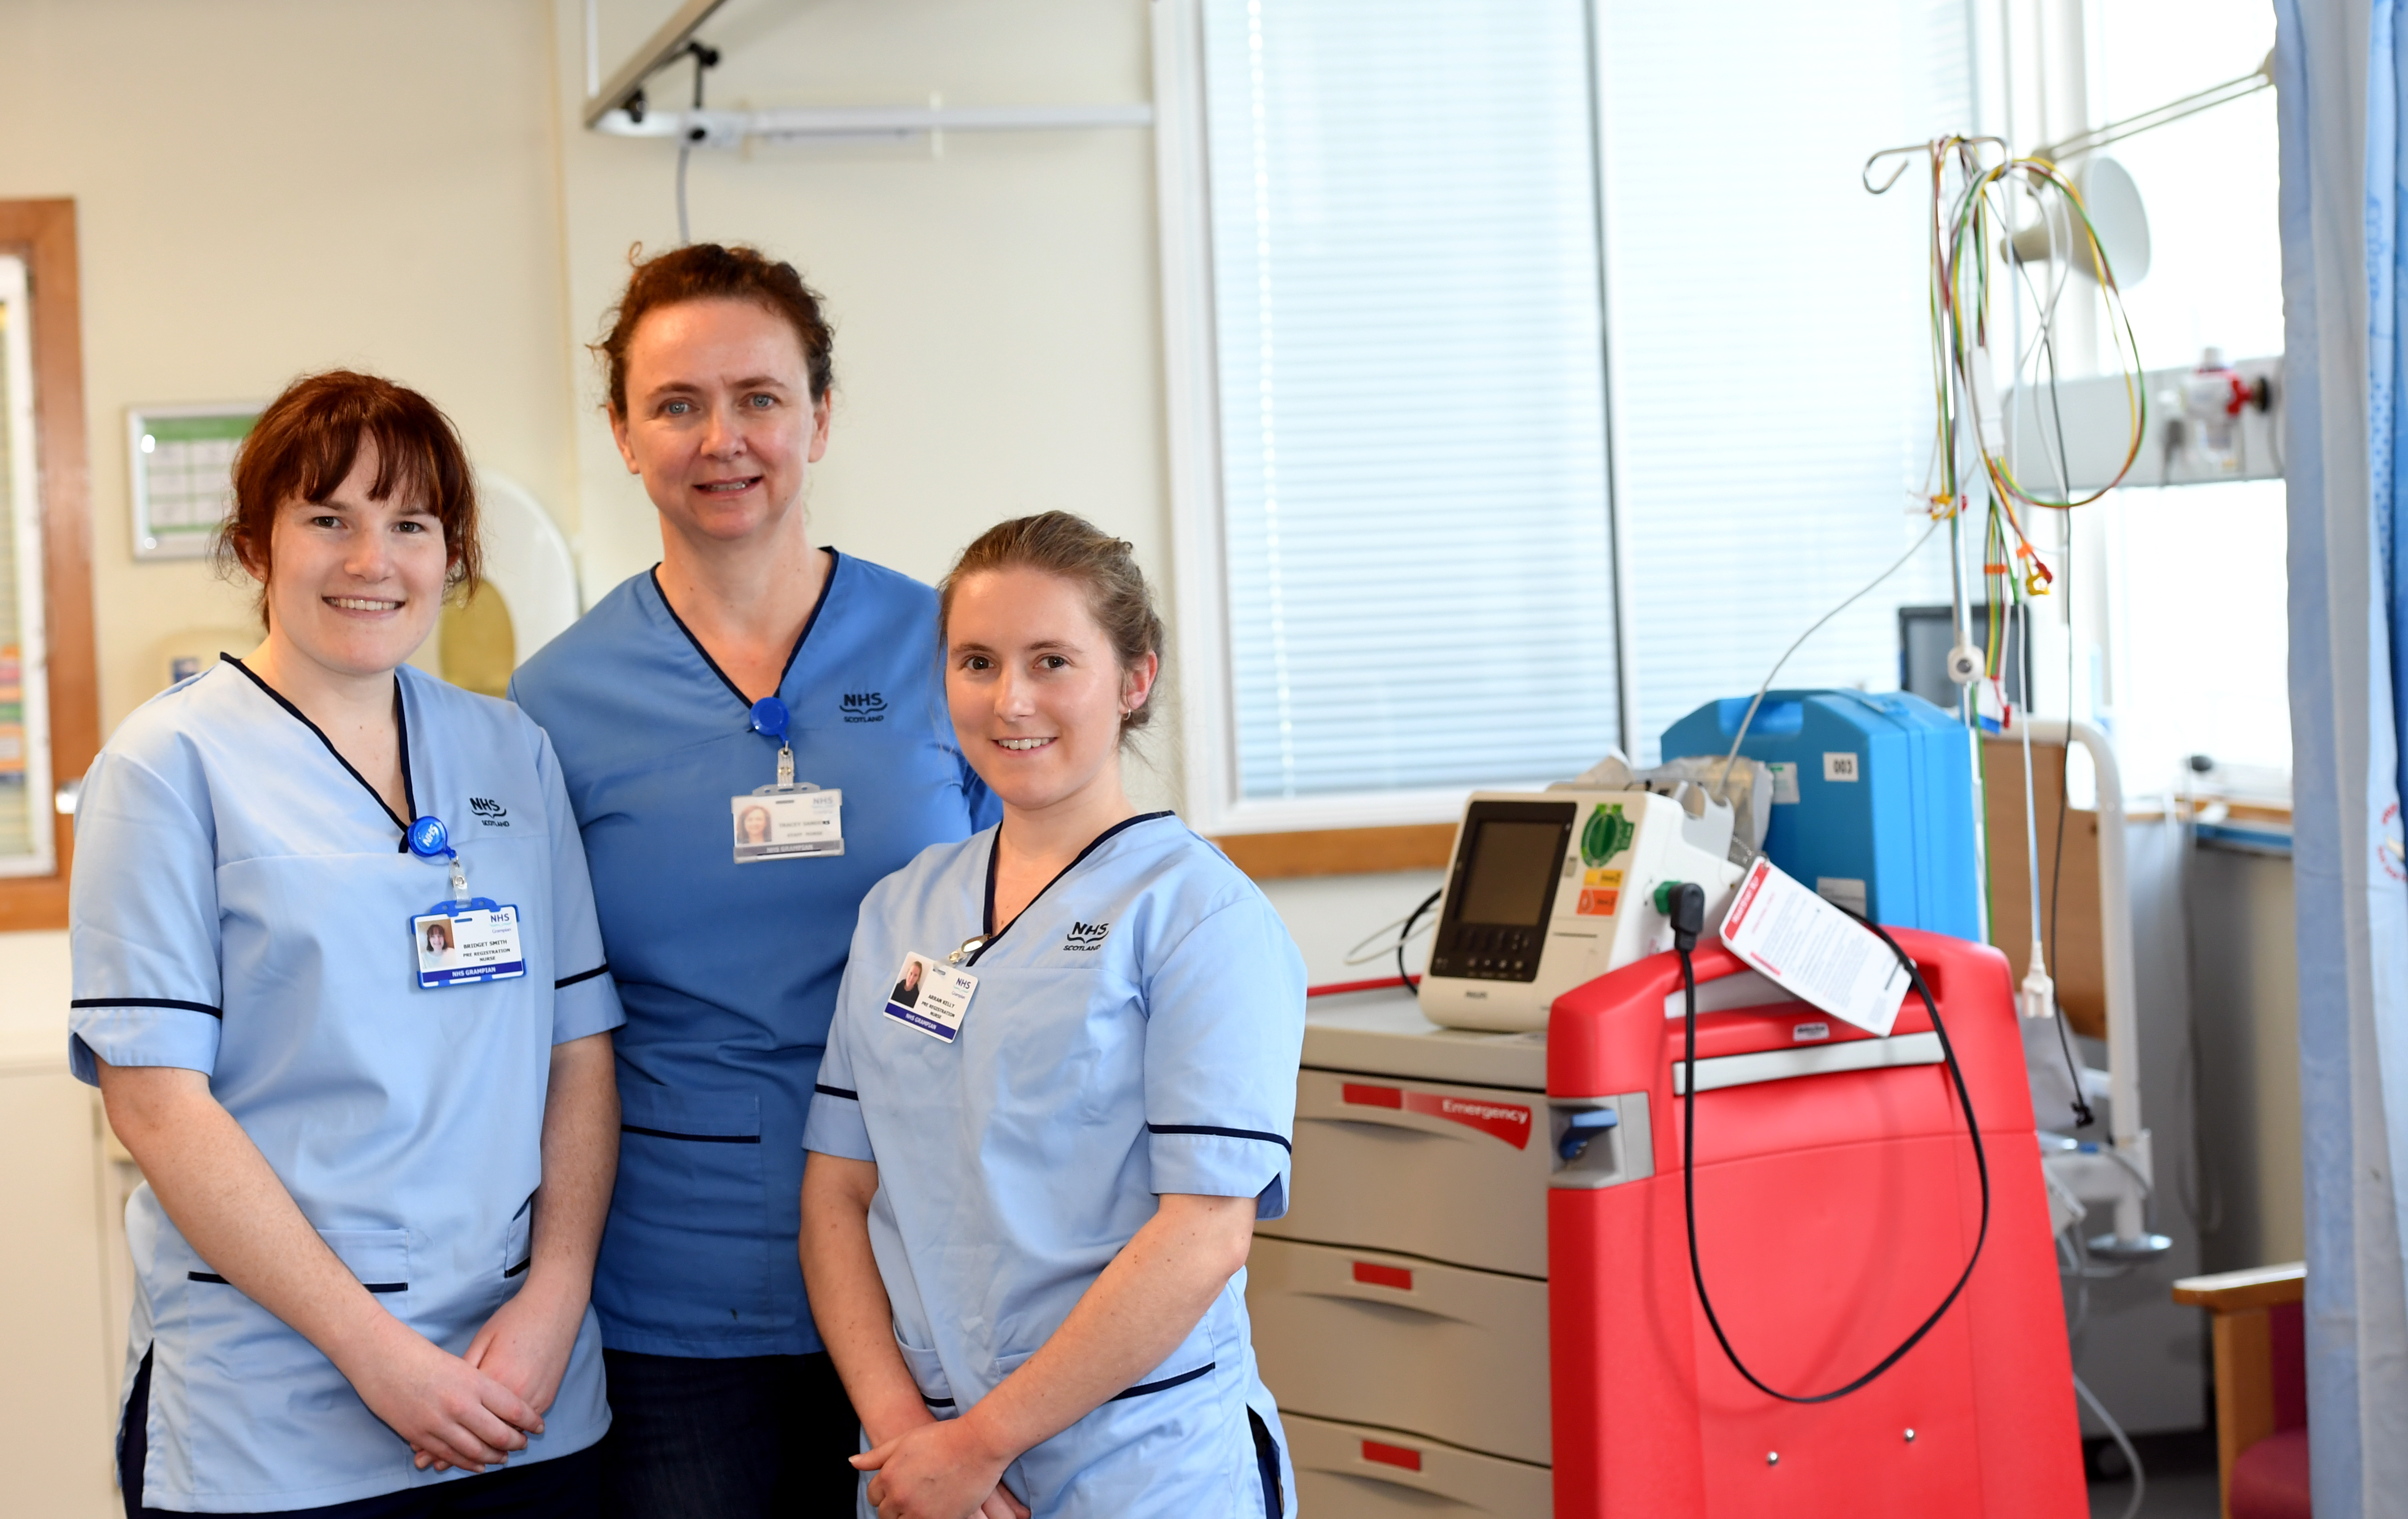 Pictured - L-R Nurses Bridget Smith, Tracey Sanders and Arran Kelly at ARI.        Picture by Kami Thomson